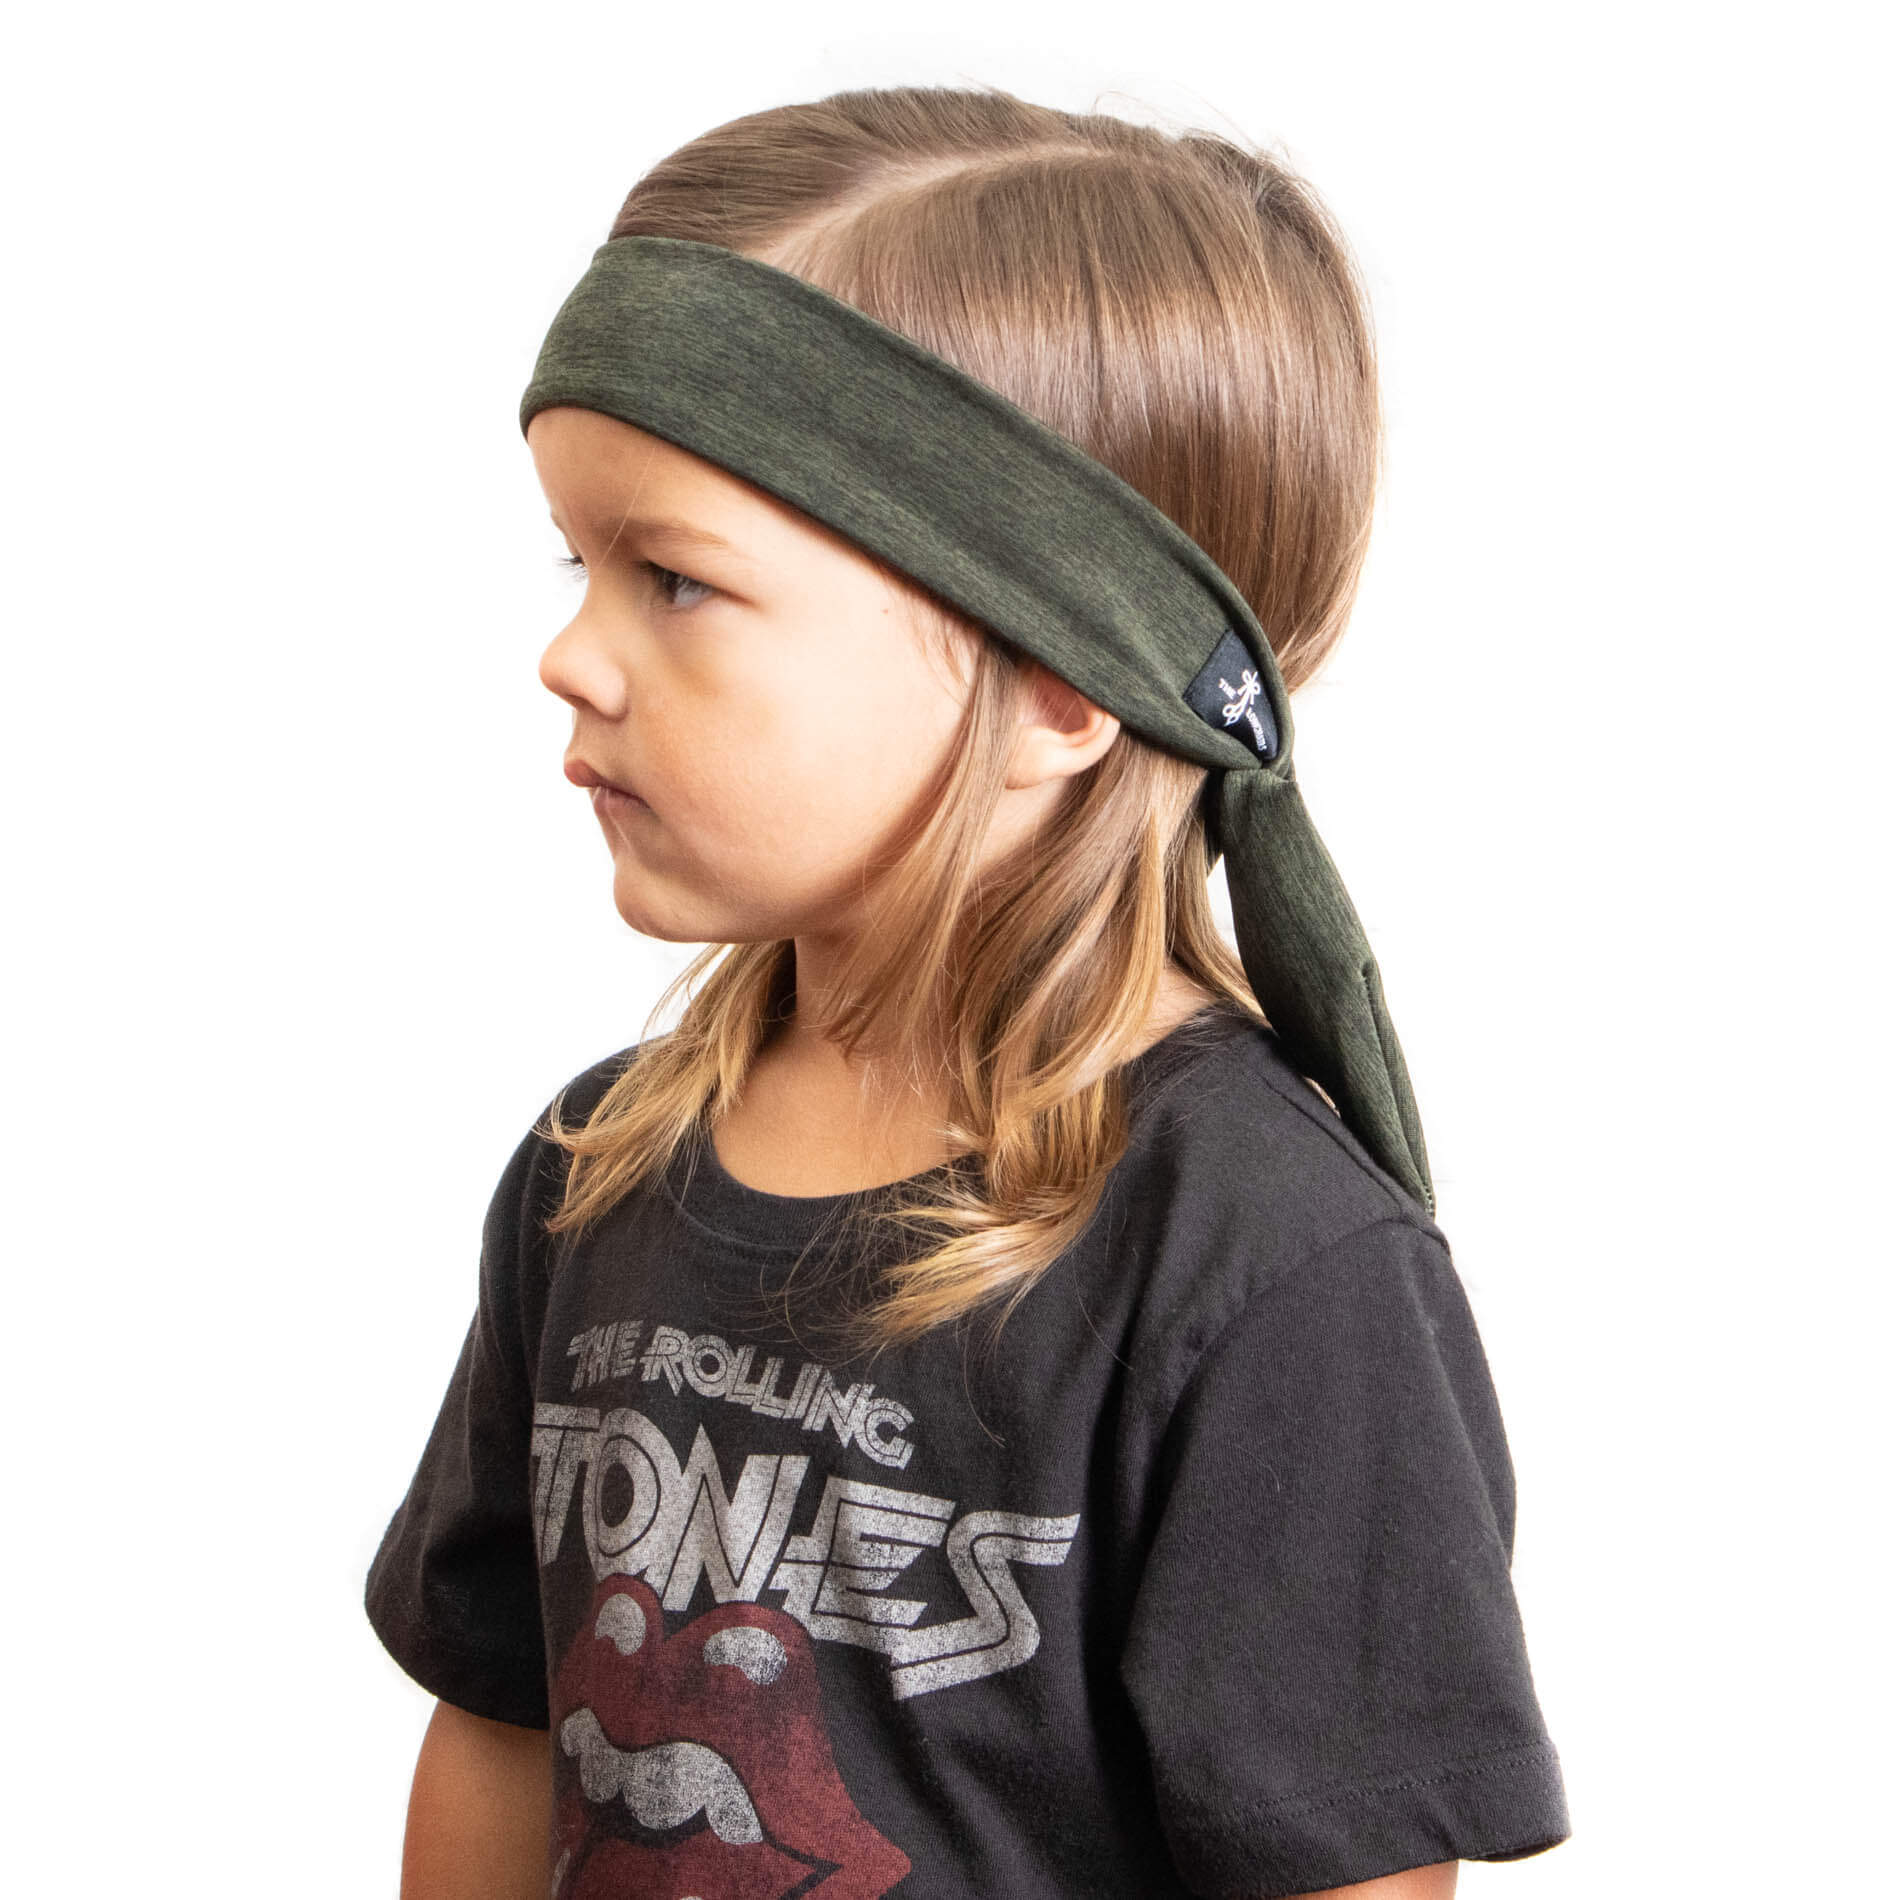 """The Vining"" Green Tieback Headband for little guys with long hair"